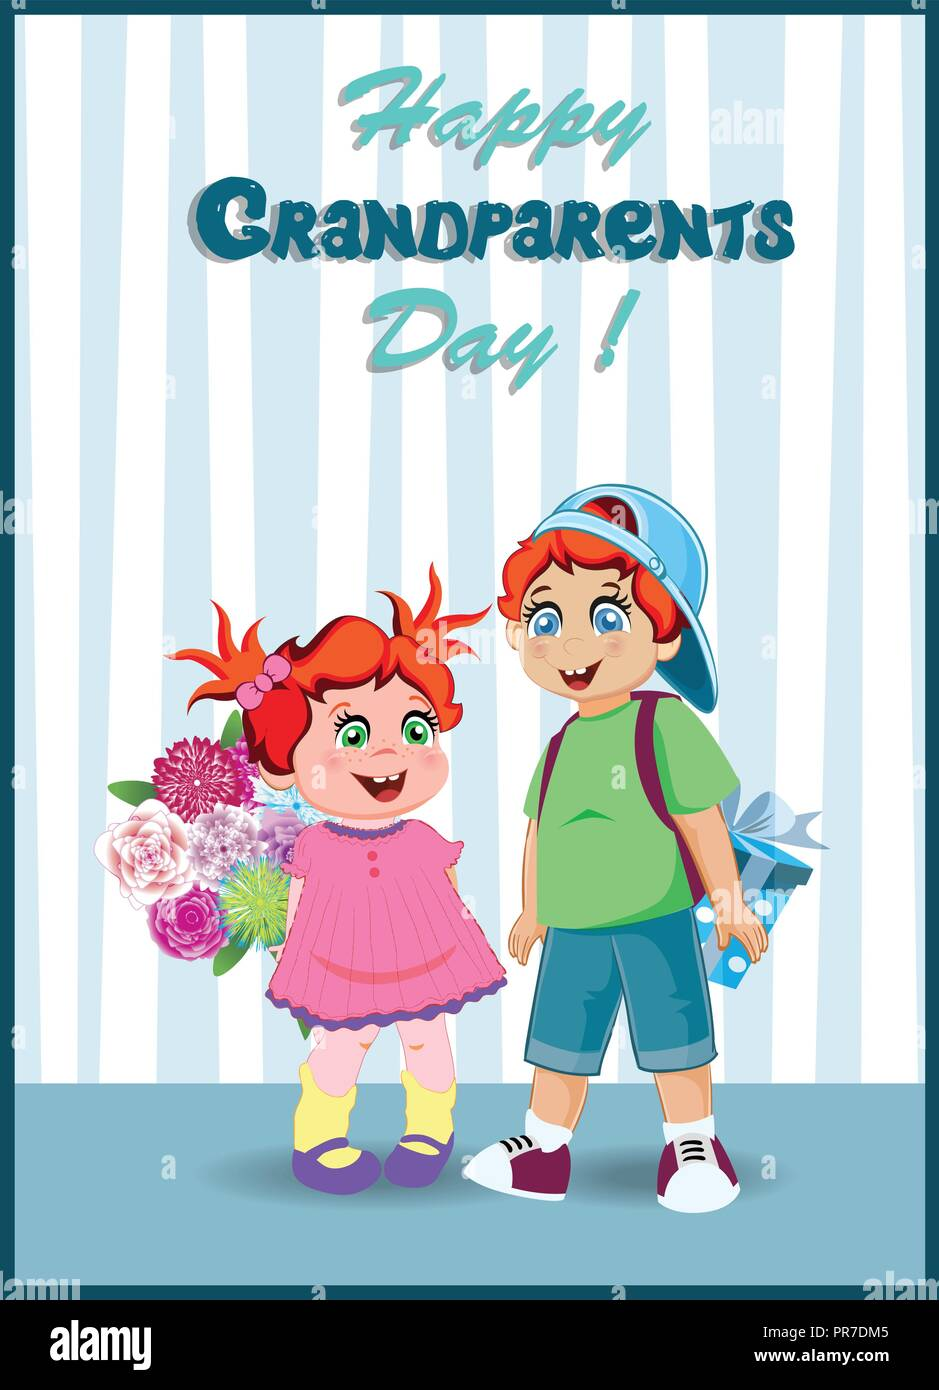 Happy grandparents day greeting card cartoon vector illustration of happy grandparents day greeting card cartoon vector illustration of granddaughter and grandson with bunch of flowers and gift box for grandma and gra m4hsunfo